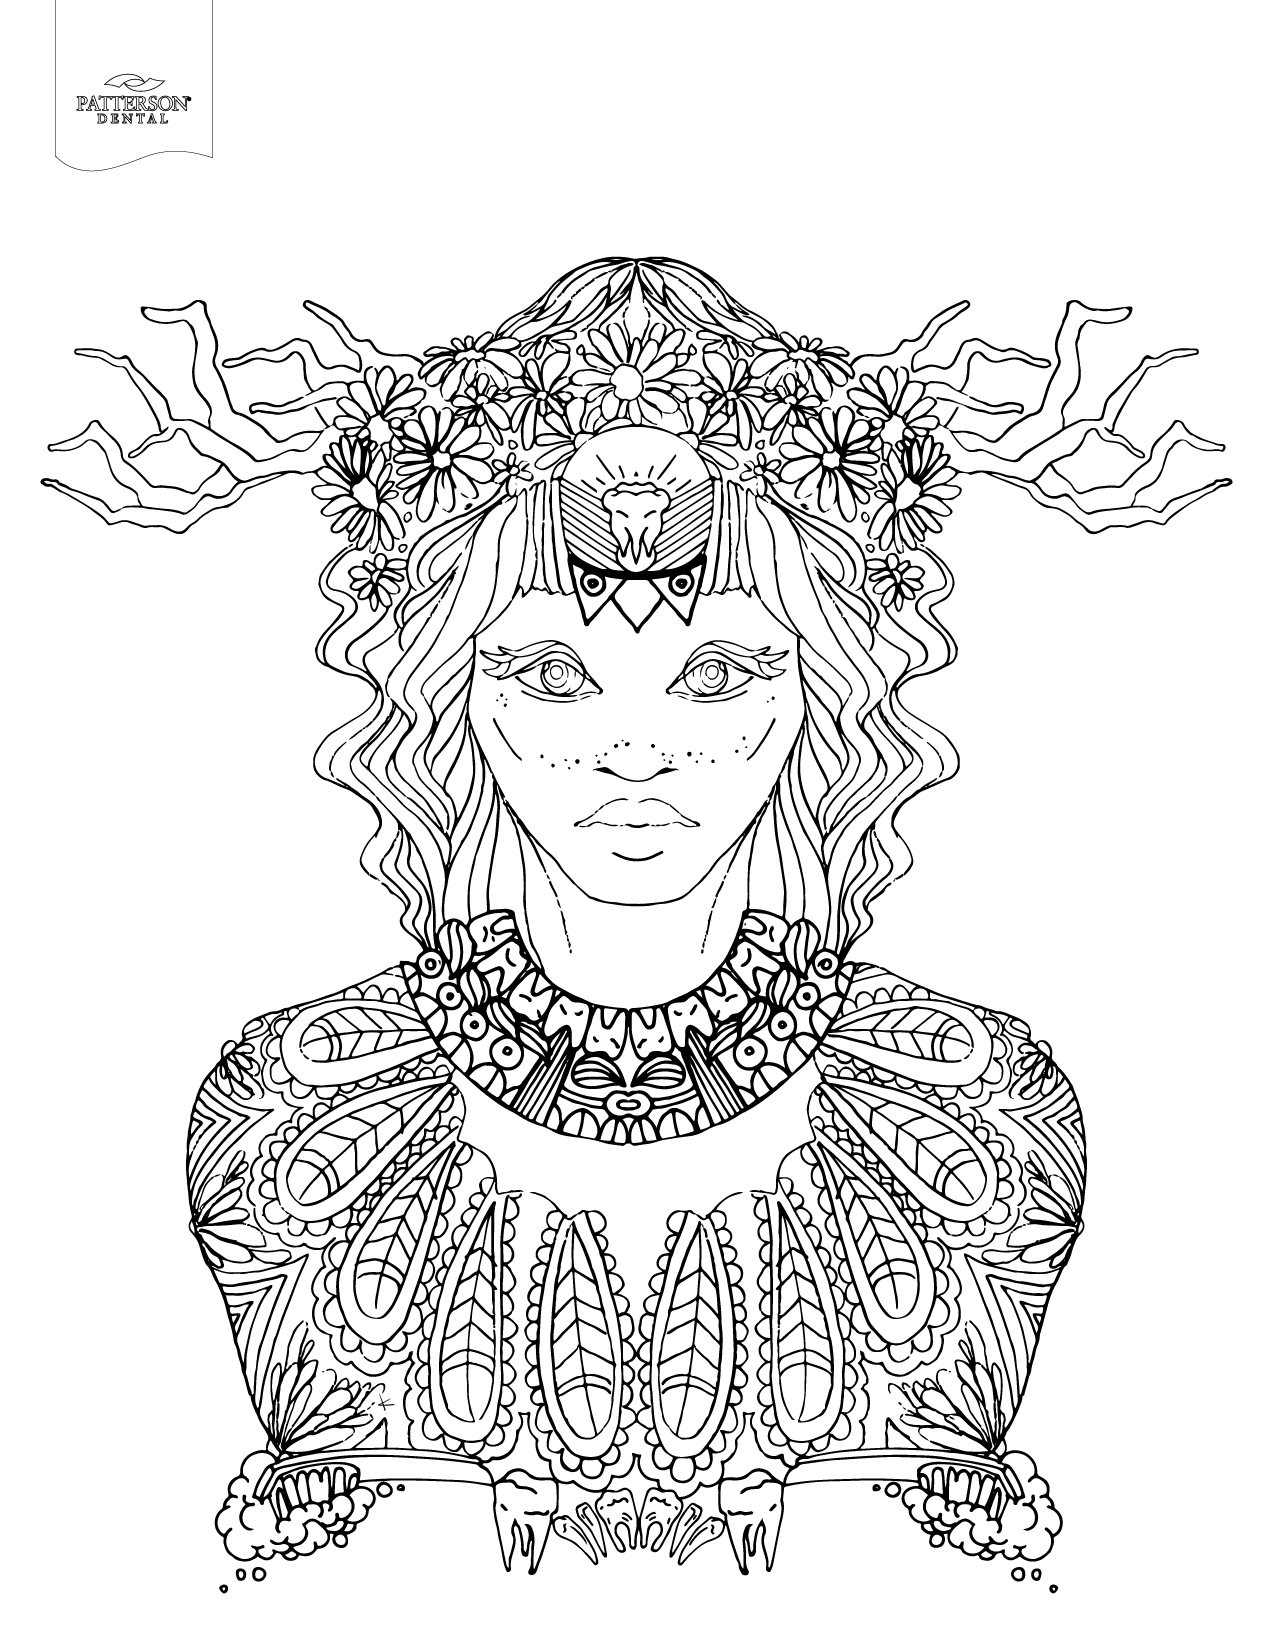 10 Toothy Adult Coloring Pages [Printable]